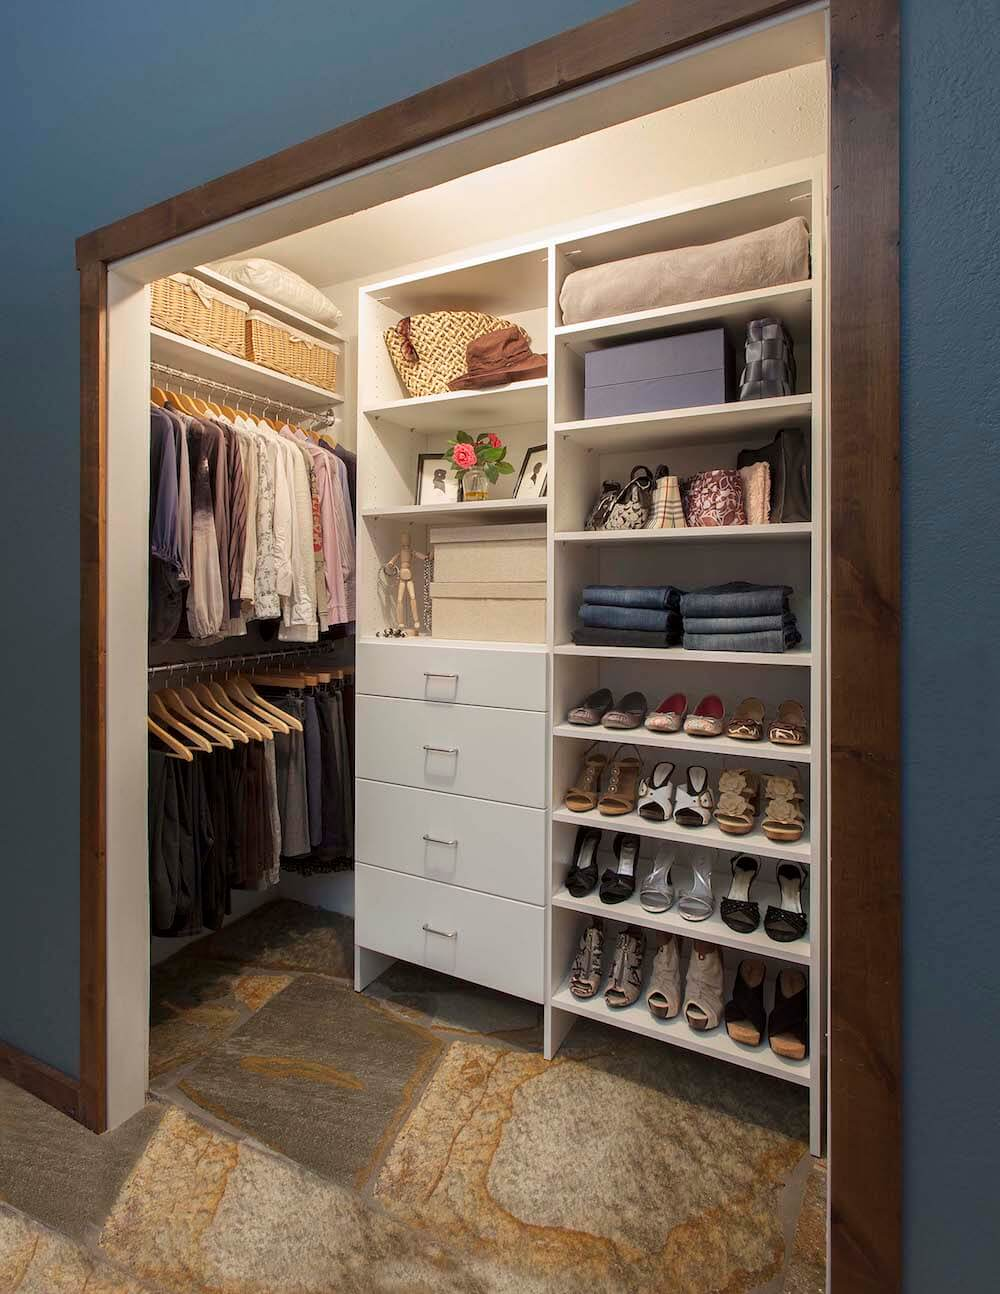 2018 Closet Cost | How Much Does It Cost to Build a Closet?